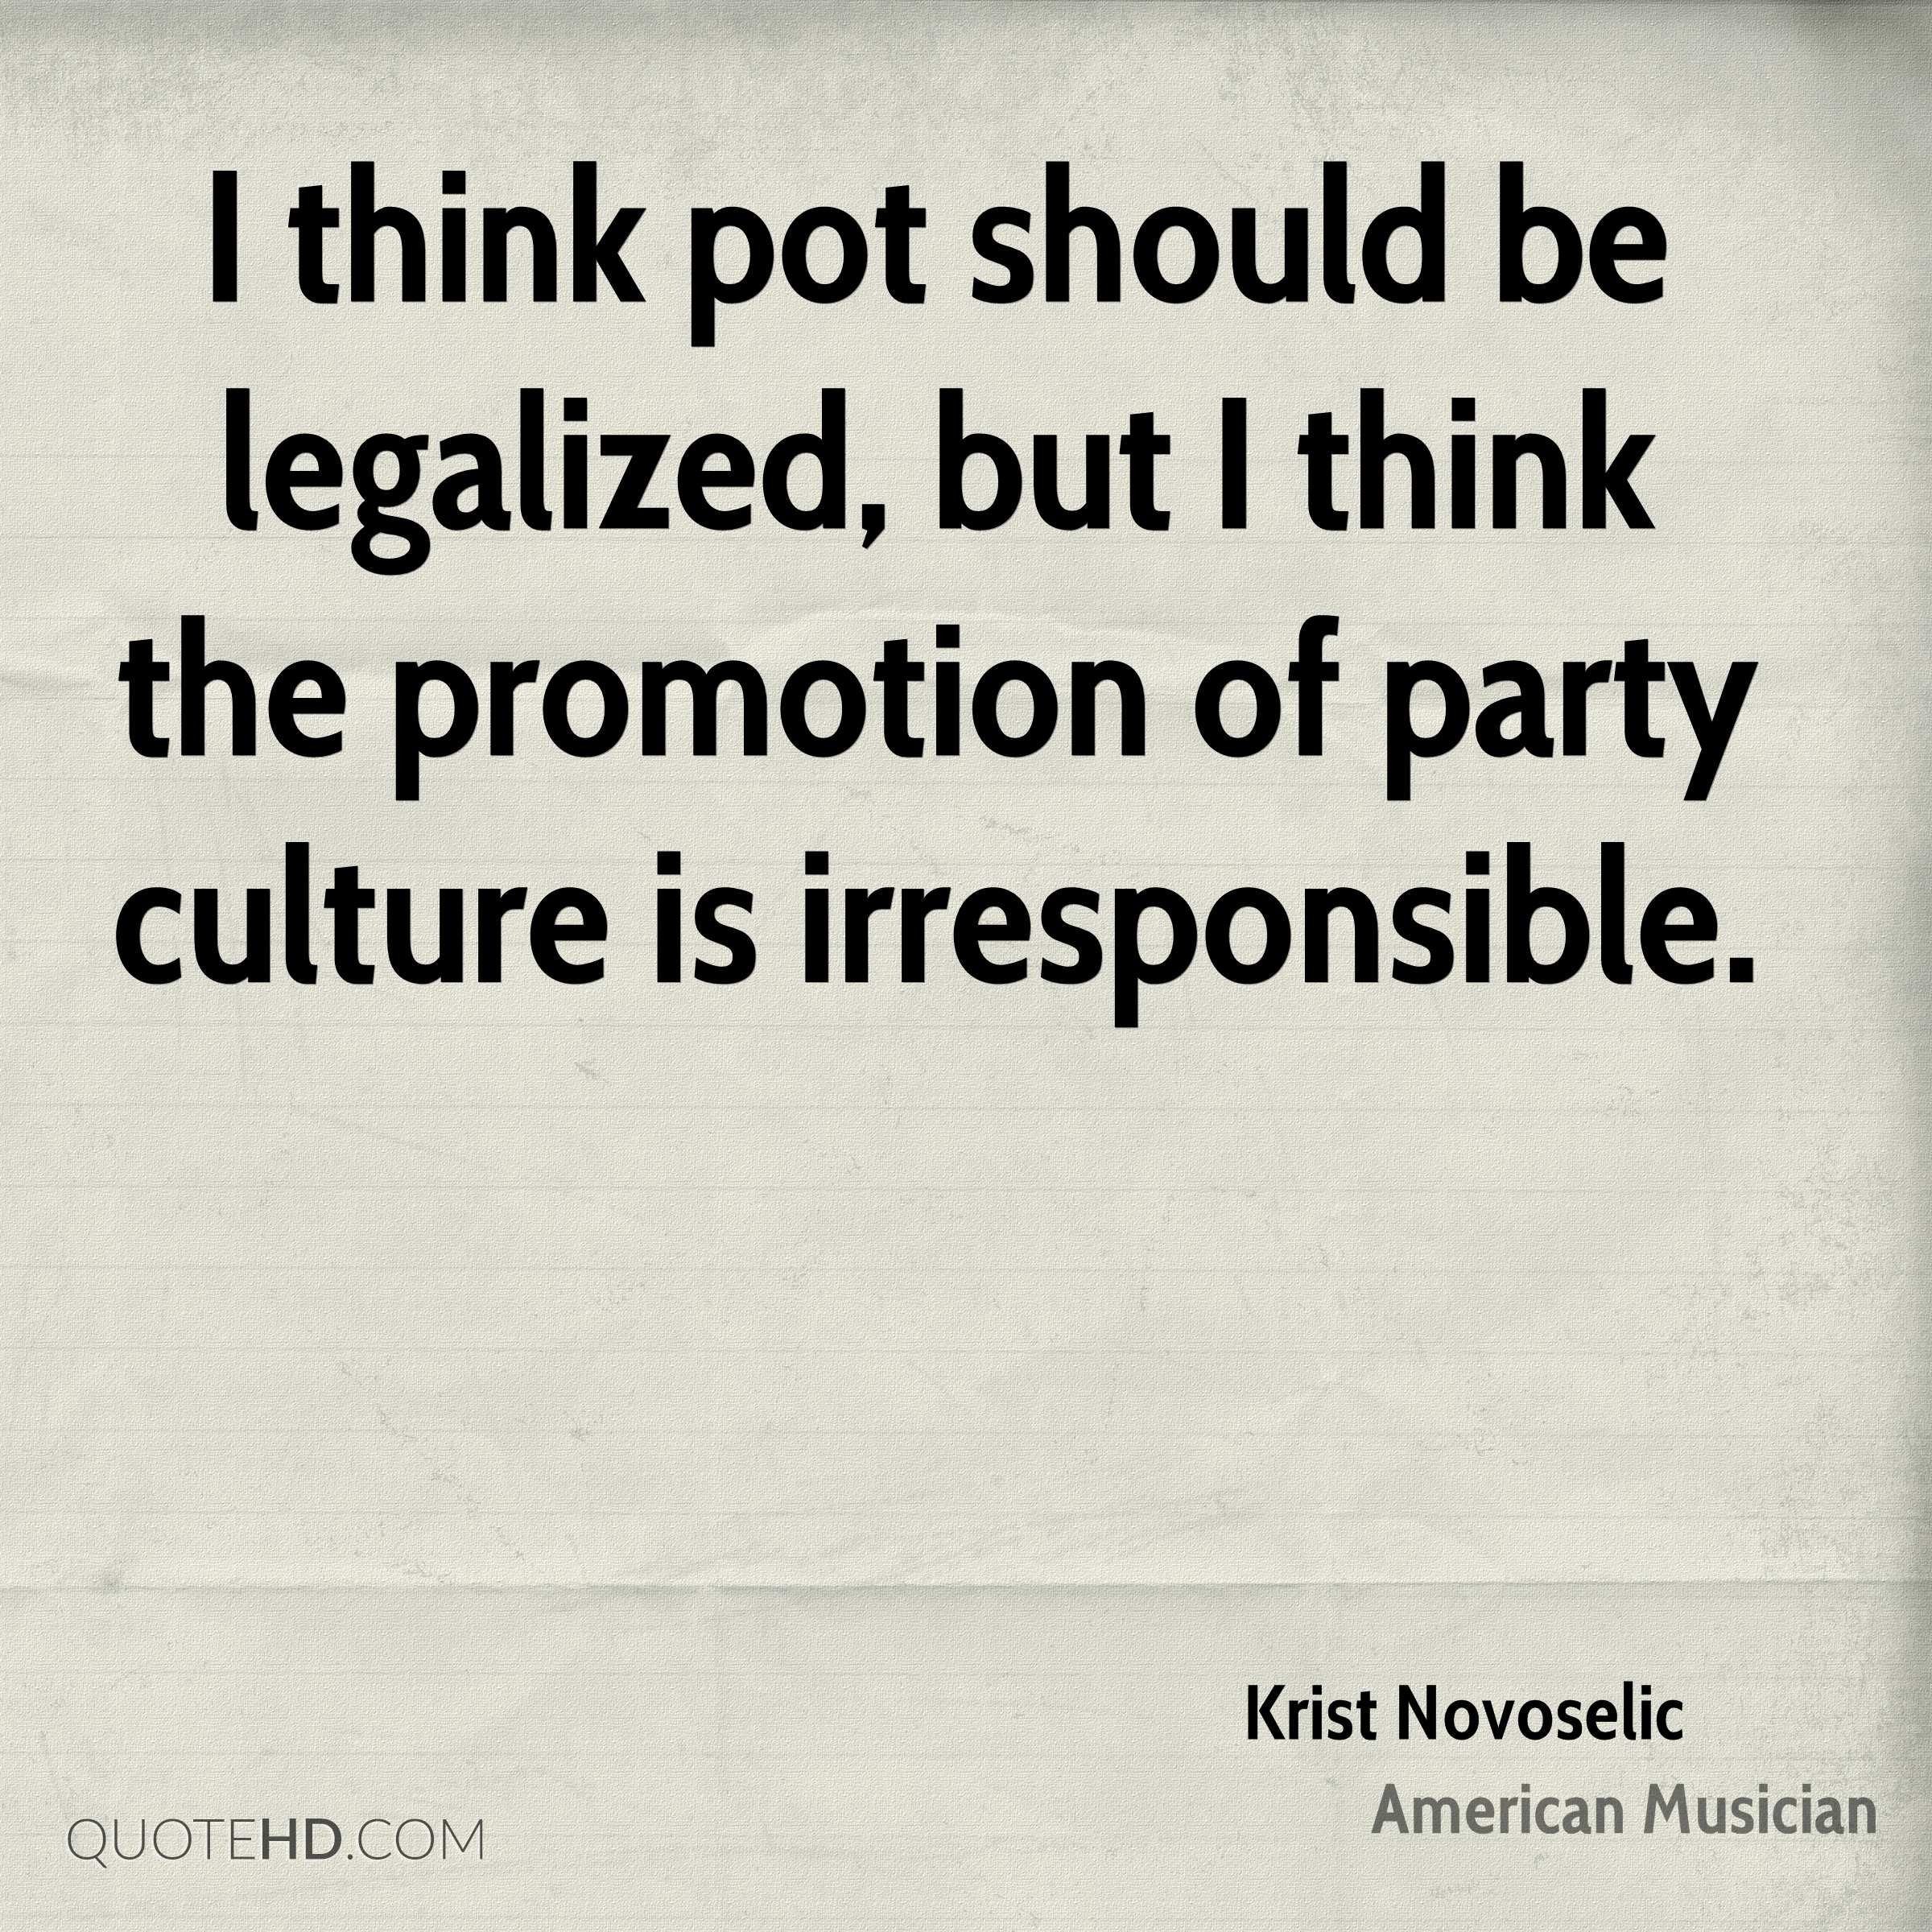 I think pot should be legalized, but I think the promotion of party culture is irresponsible.